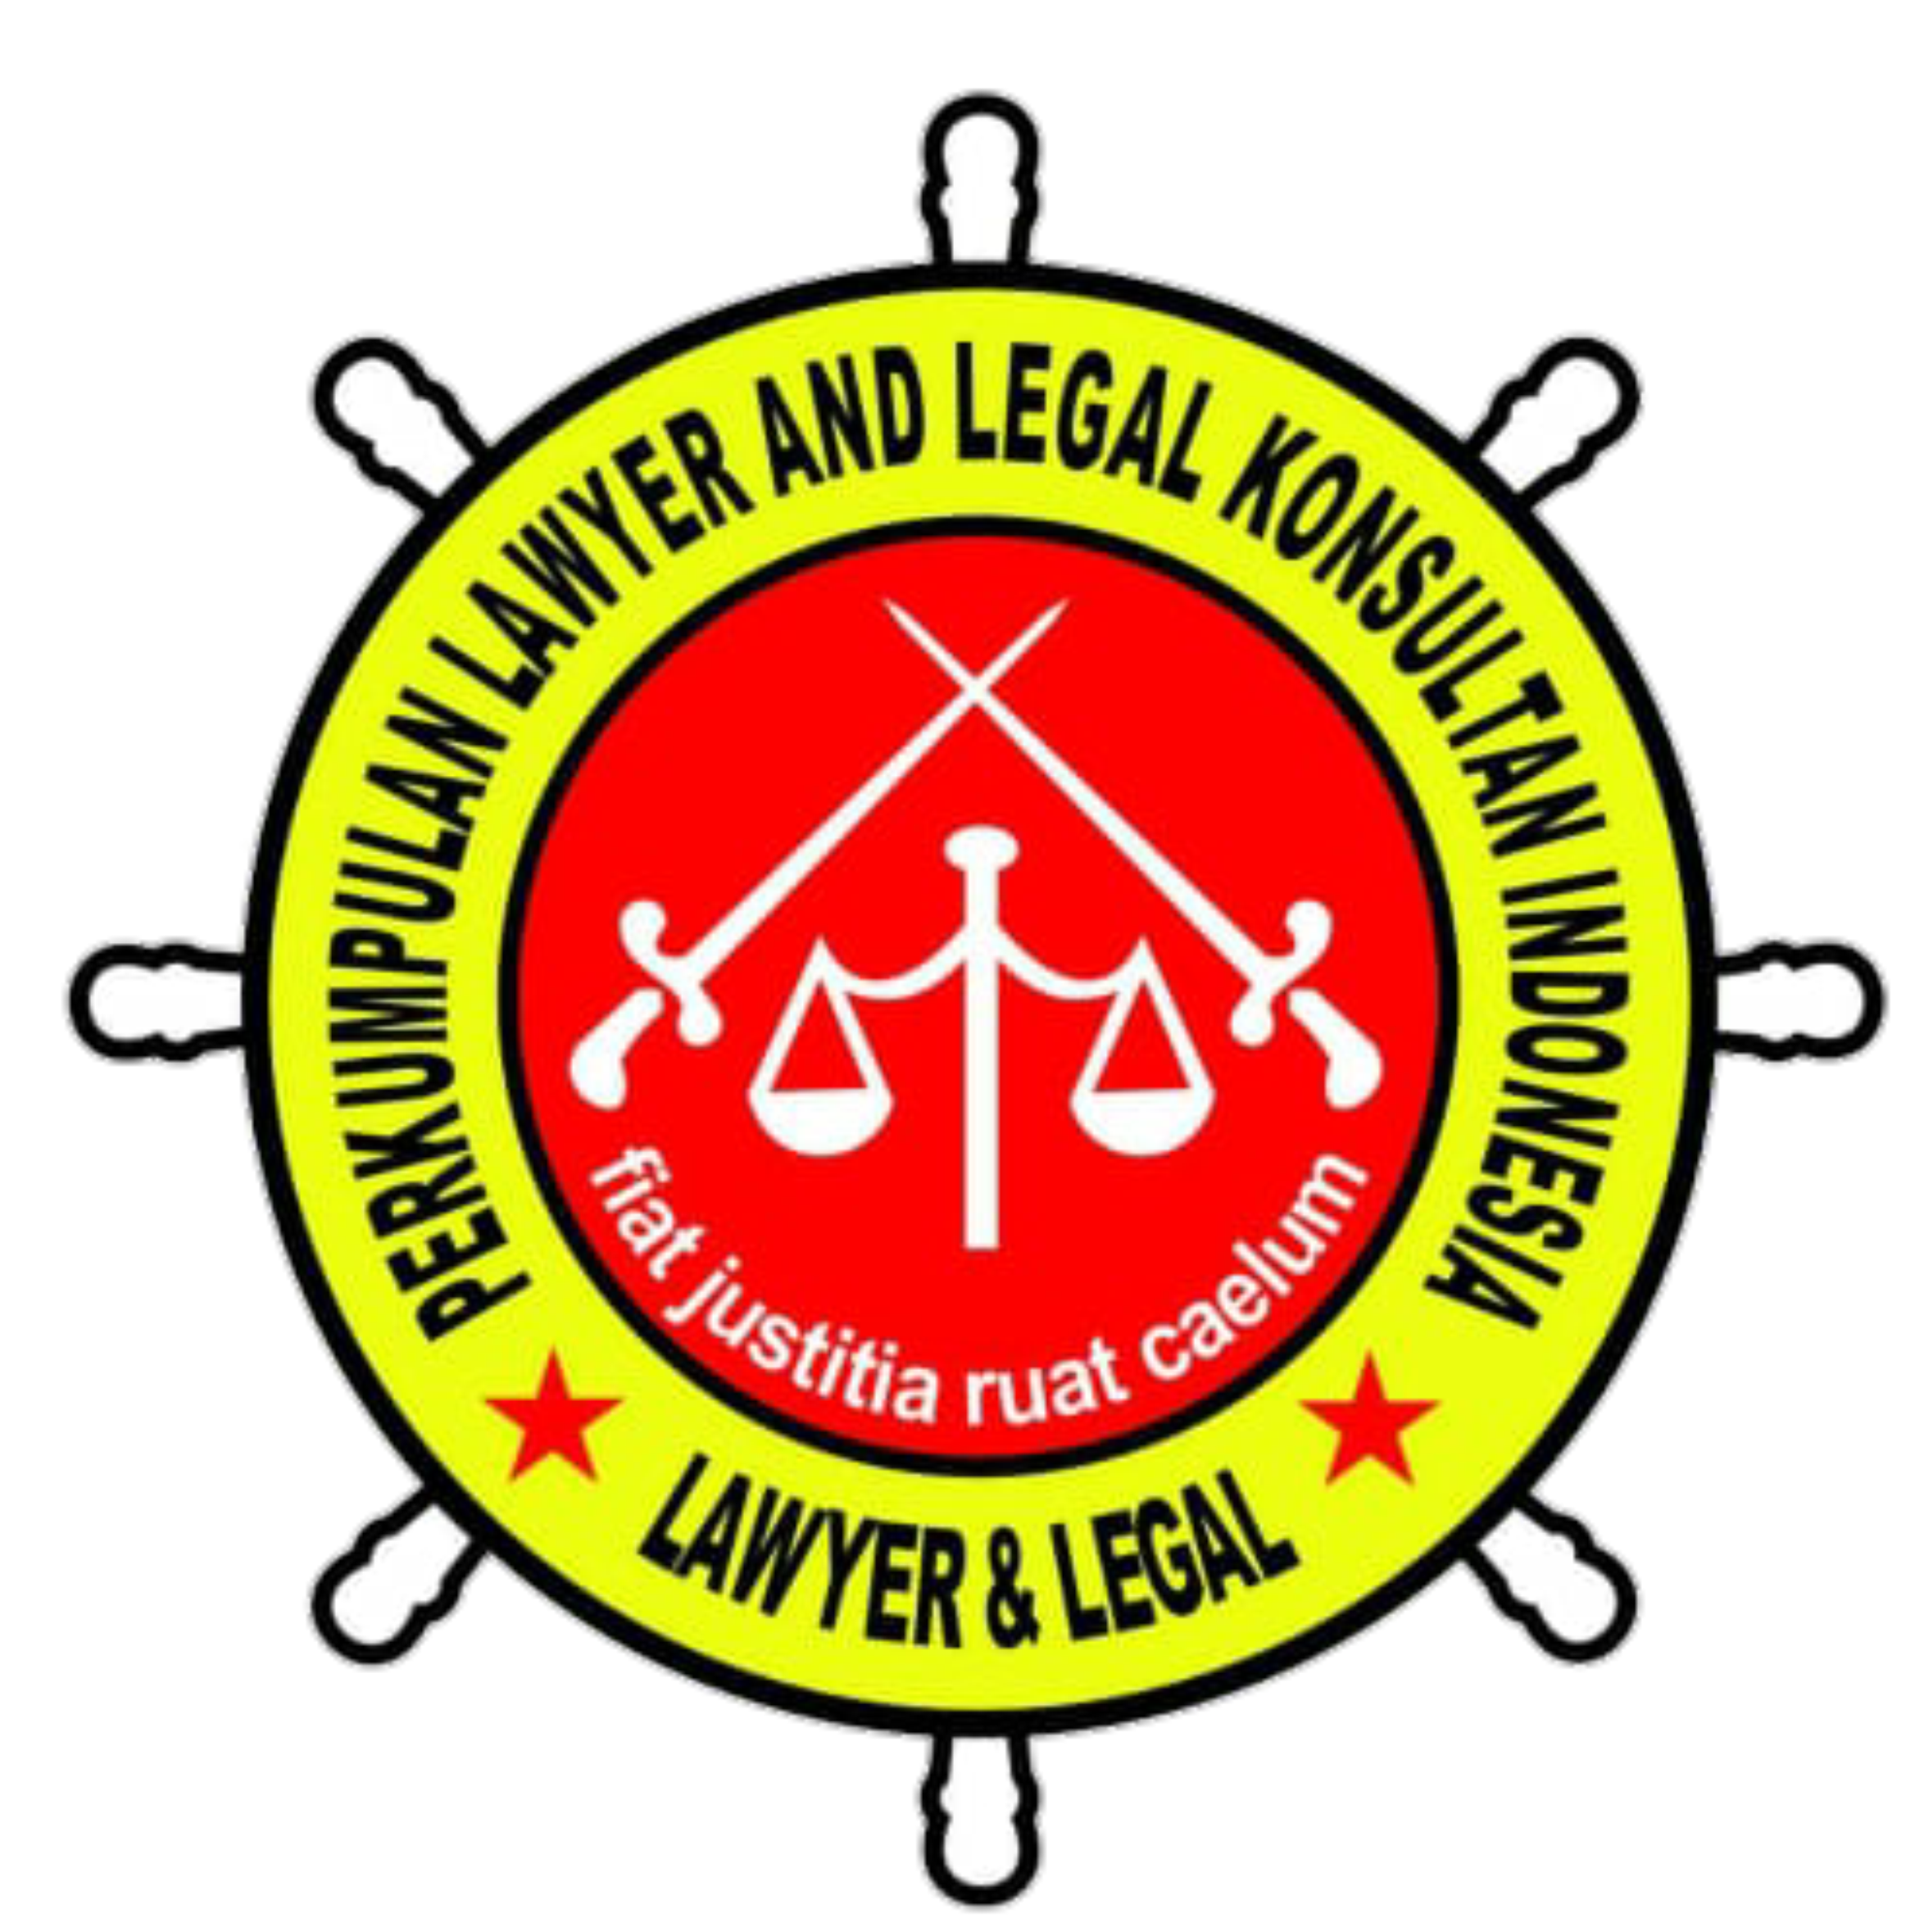 LAWYER & LEGAL Buka Pendaftaran Pendidikan Advokat